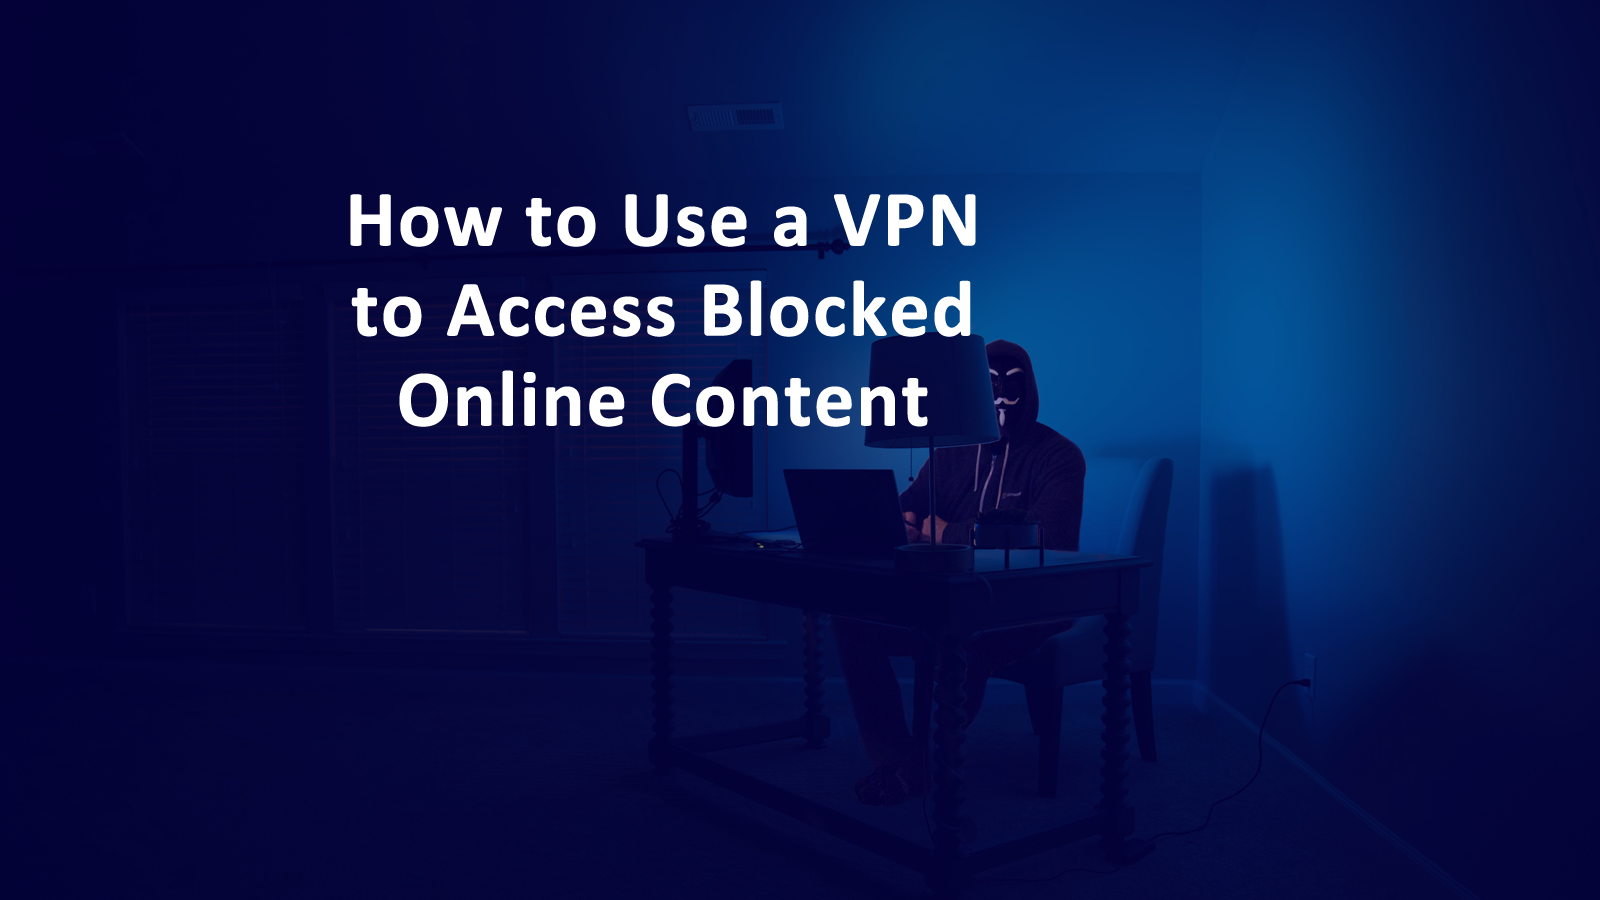 929e995d4ffb7ccf41200680b9990114 - How To Check If Vpn Is Running